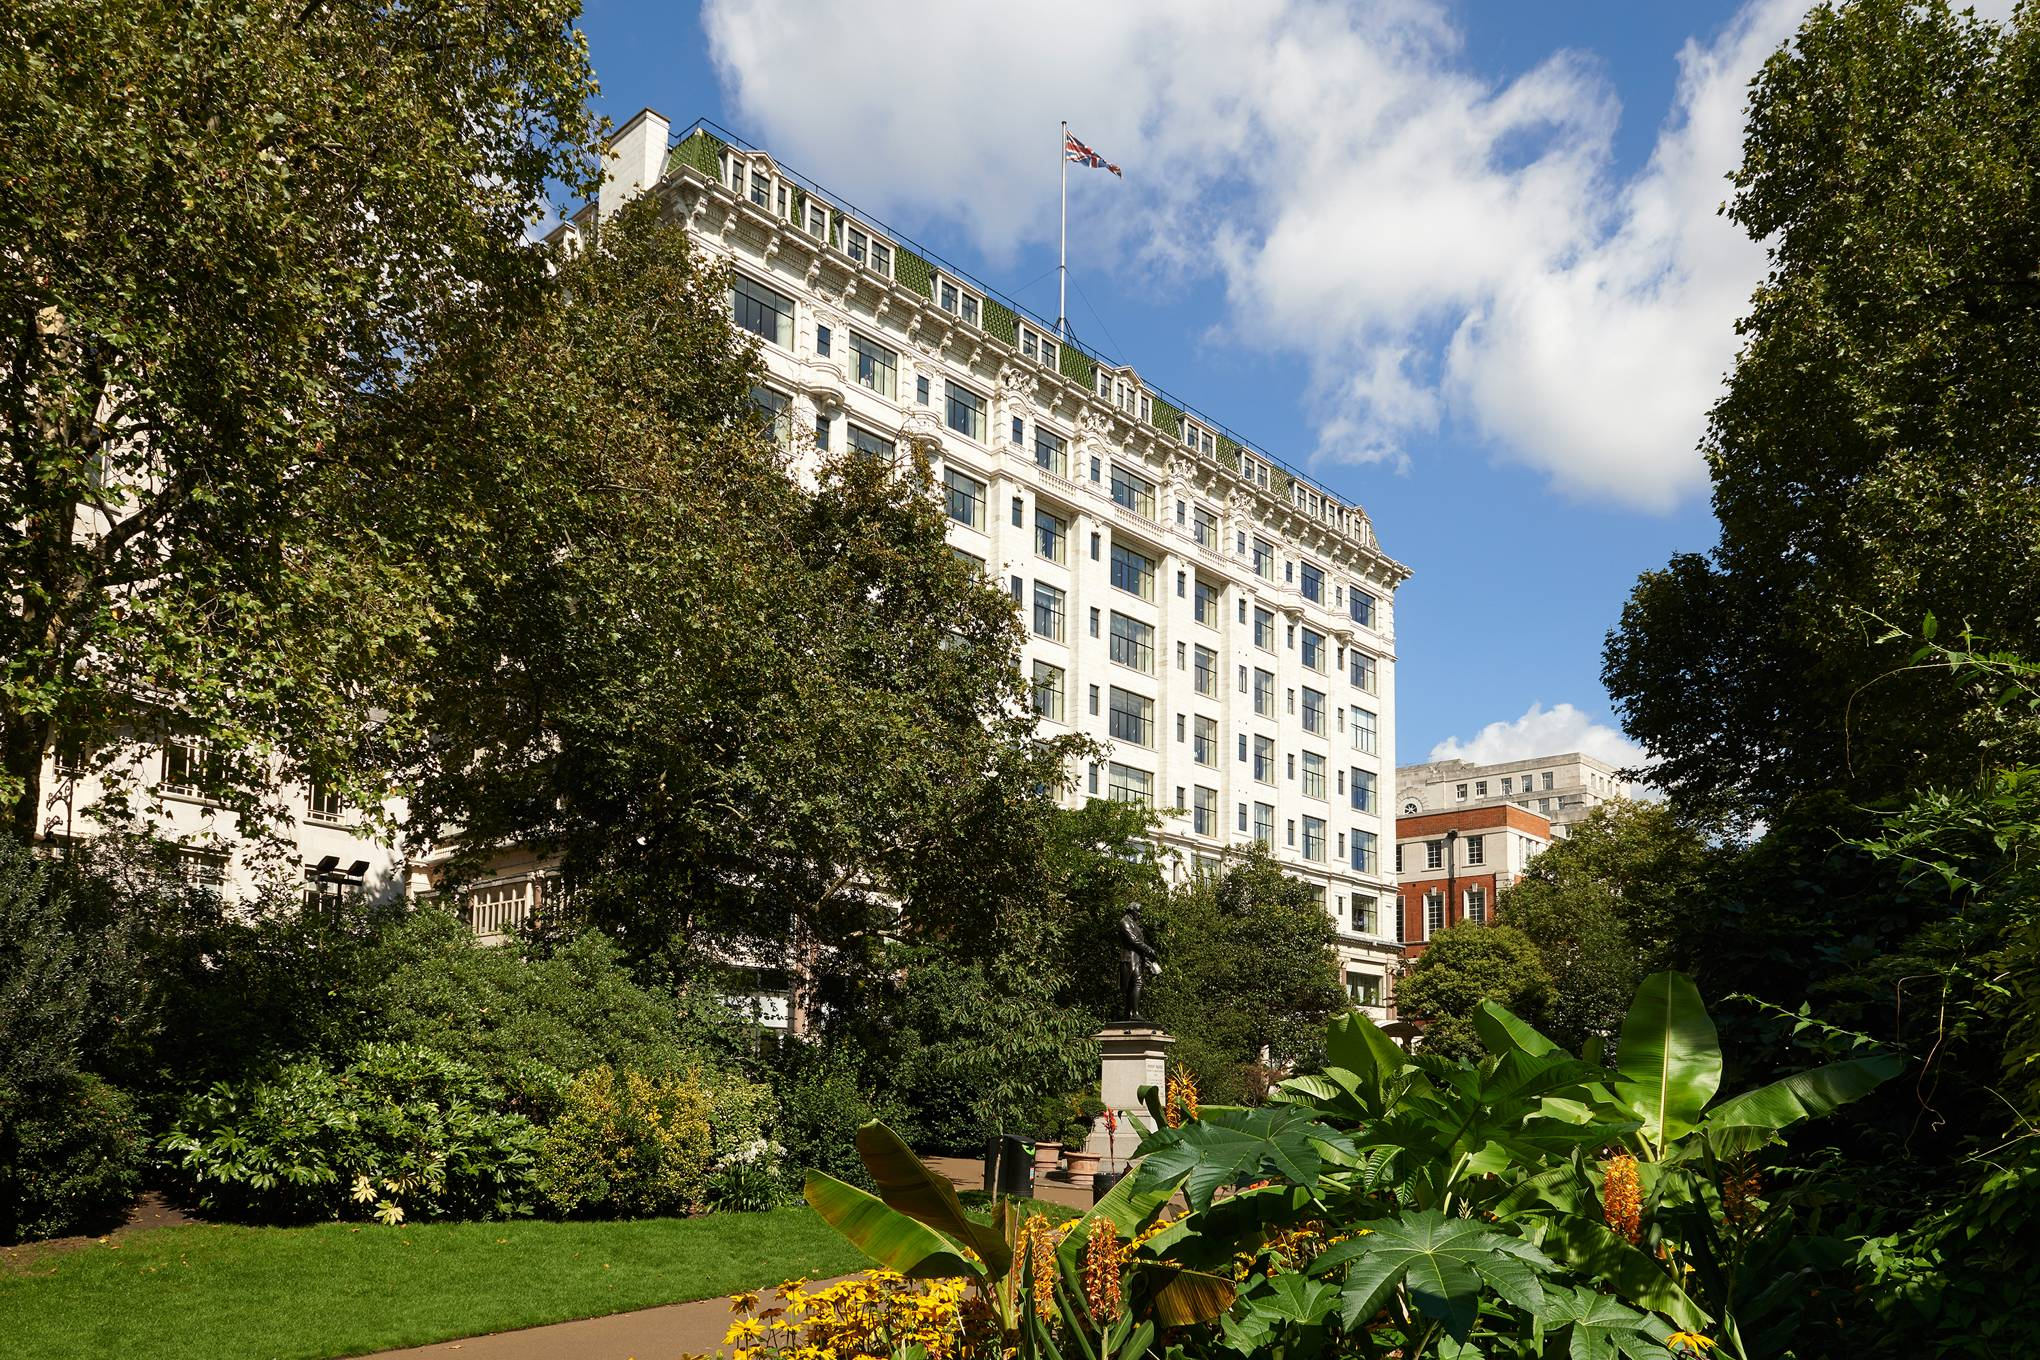 The Savoy London hotel review: a classic London hideaway